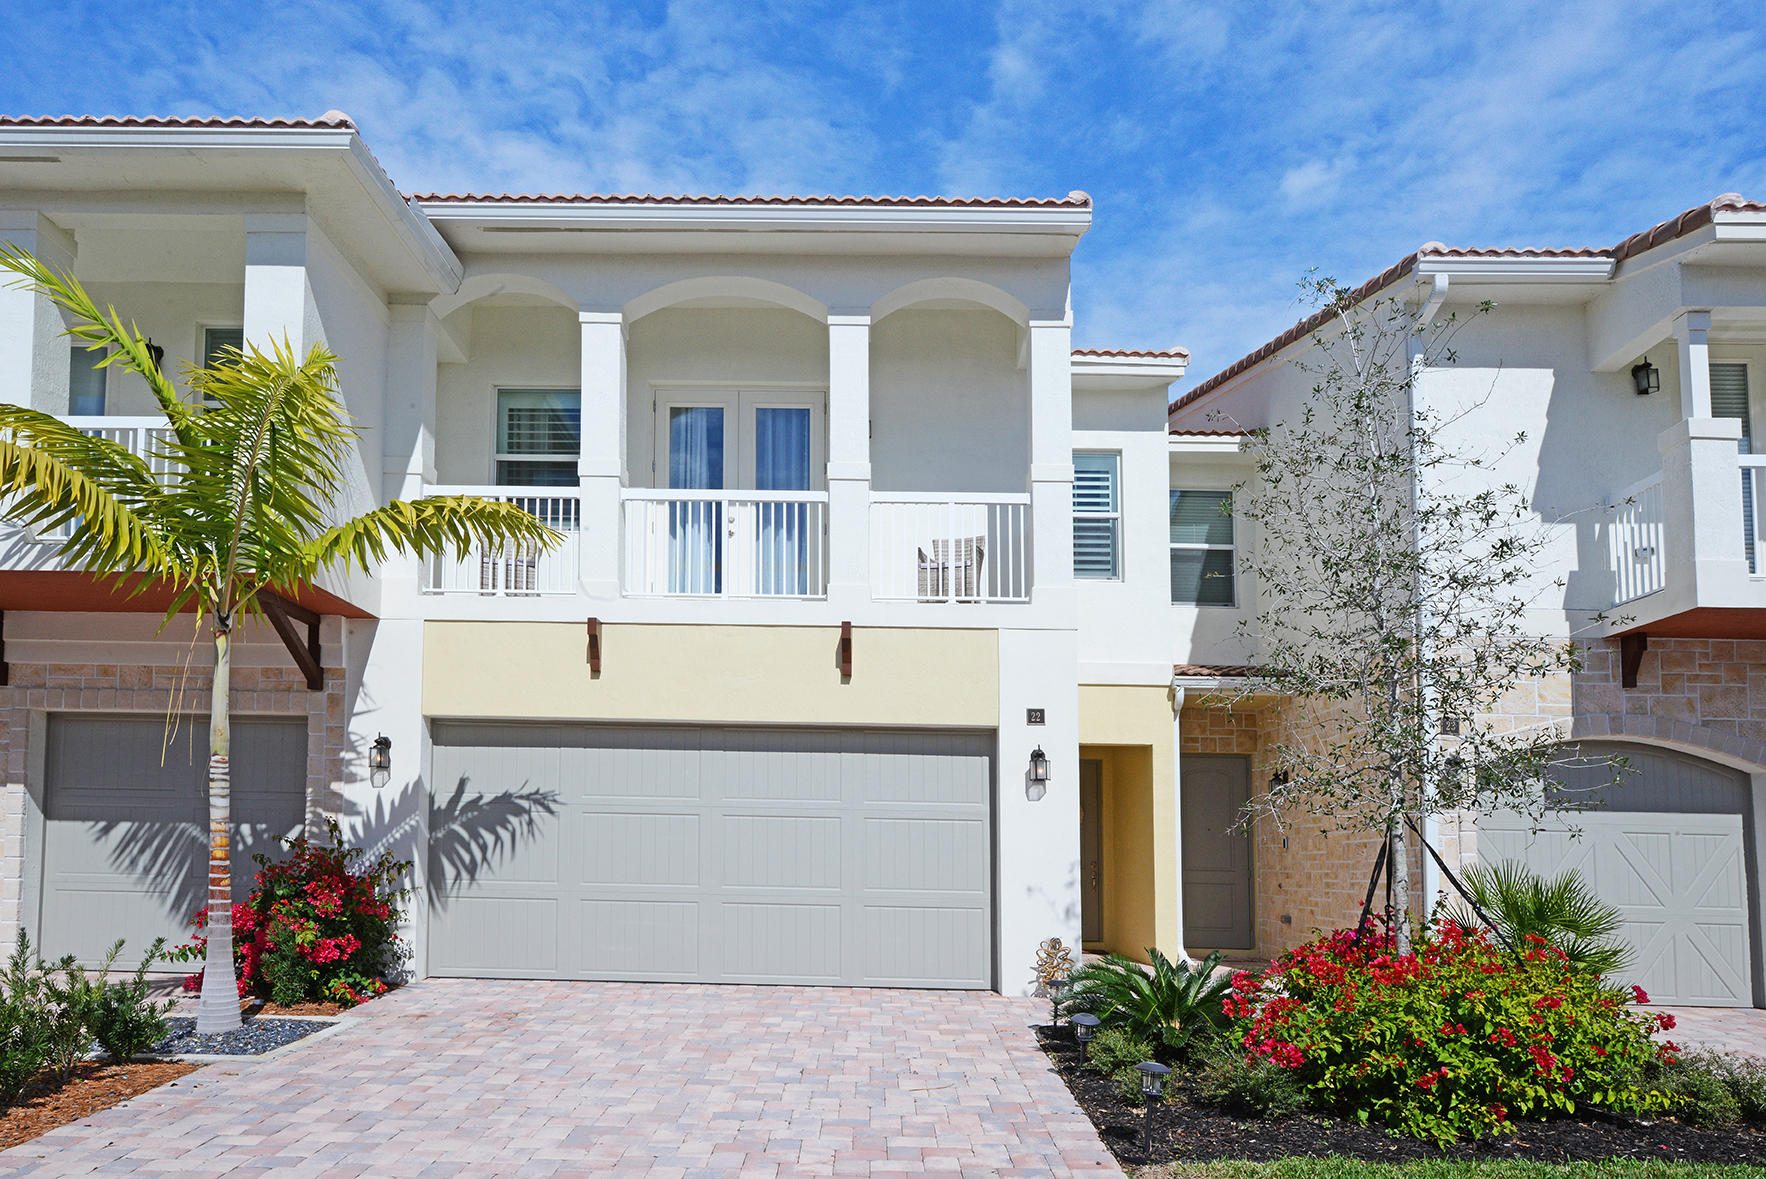 100 69th Circle, Boca Raton, Florida 33487, 3 Bedrooms Bedrooms, ,2.1 BathroomsBathrooms,Townhouse,For Sale,69th,RX-10502267